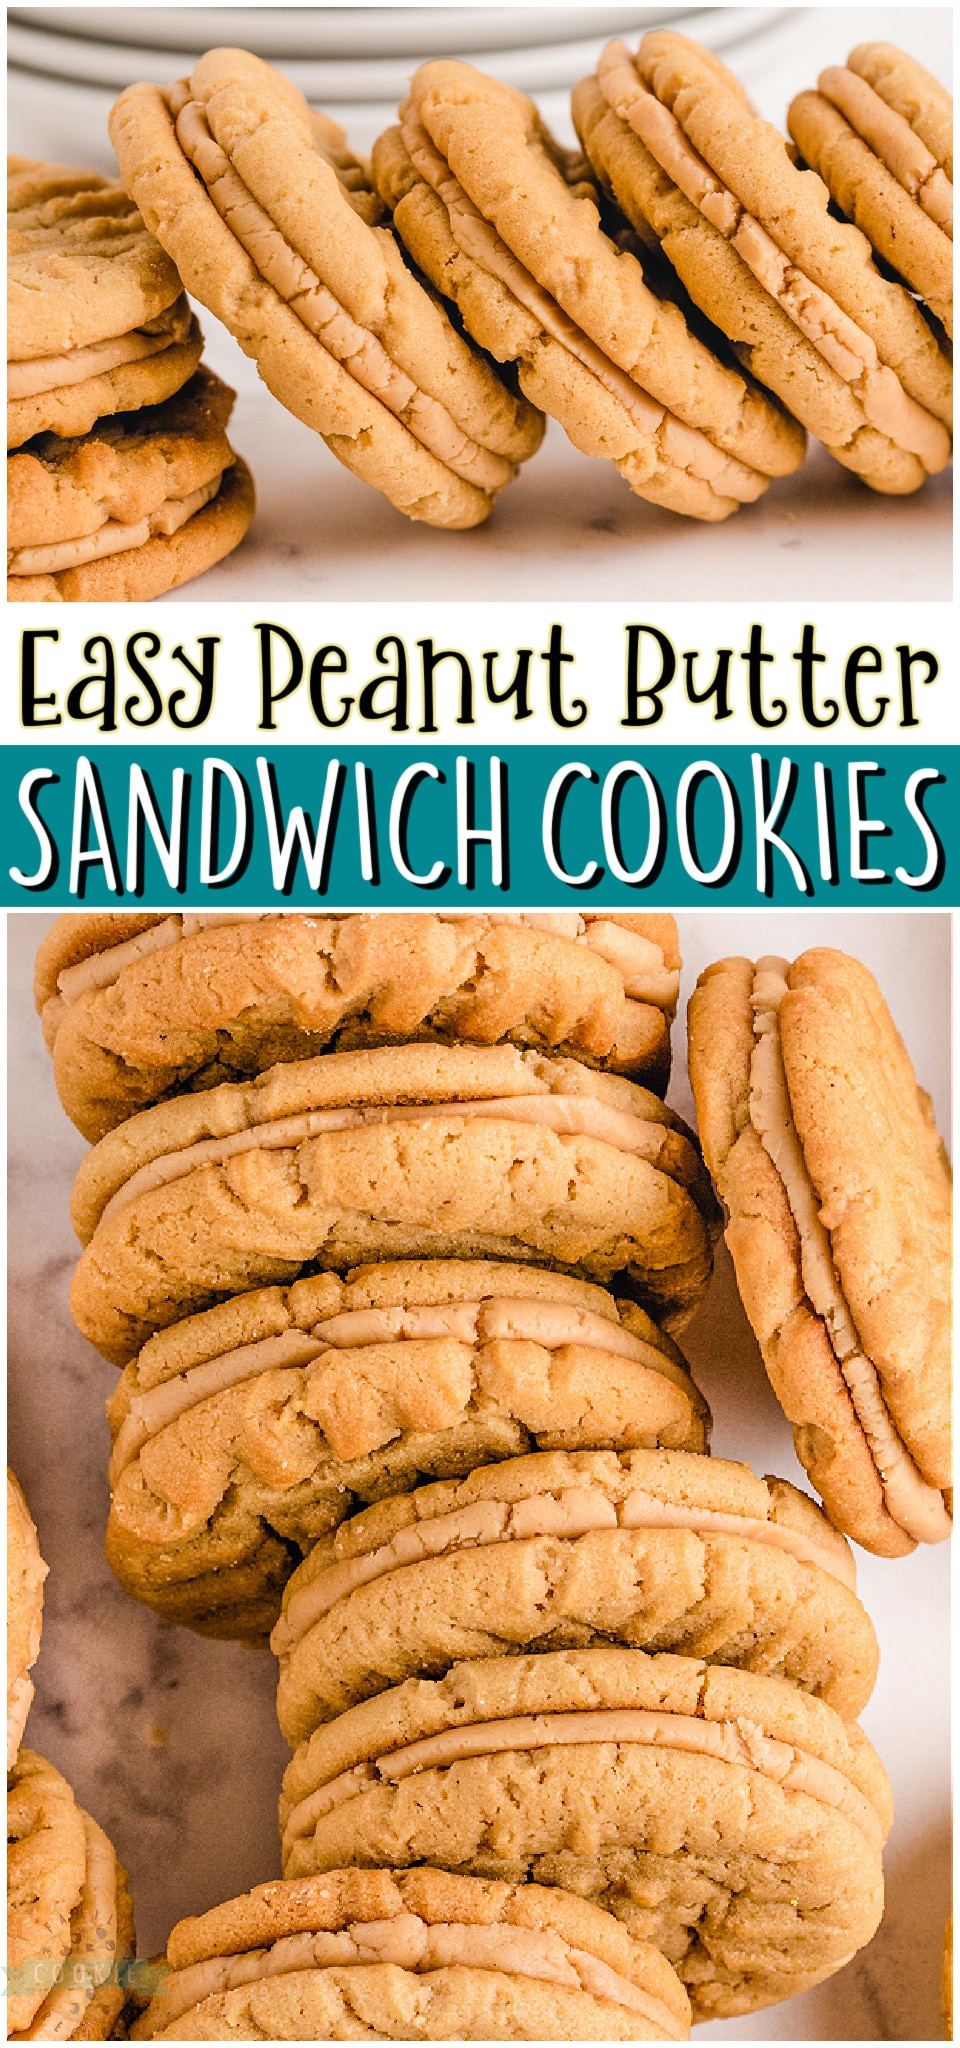 Peanut Butter Sandwich Cookies made with chewy peanut butter cookies & a creamy peanut butter filling. Peanut Butter lovers rejoice! We're sharing our homemade peanut butter cookie sandwiches that everyone goes crazy over! #peanutbutter #cookies #sandwichcookies #creamypeanutbutter #filling #dessert #baking #easyrecipe from FAMILY COOKIE RECIPES via @familycookierecipes